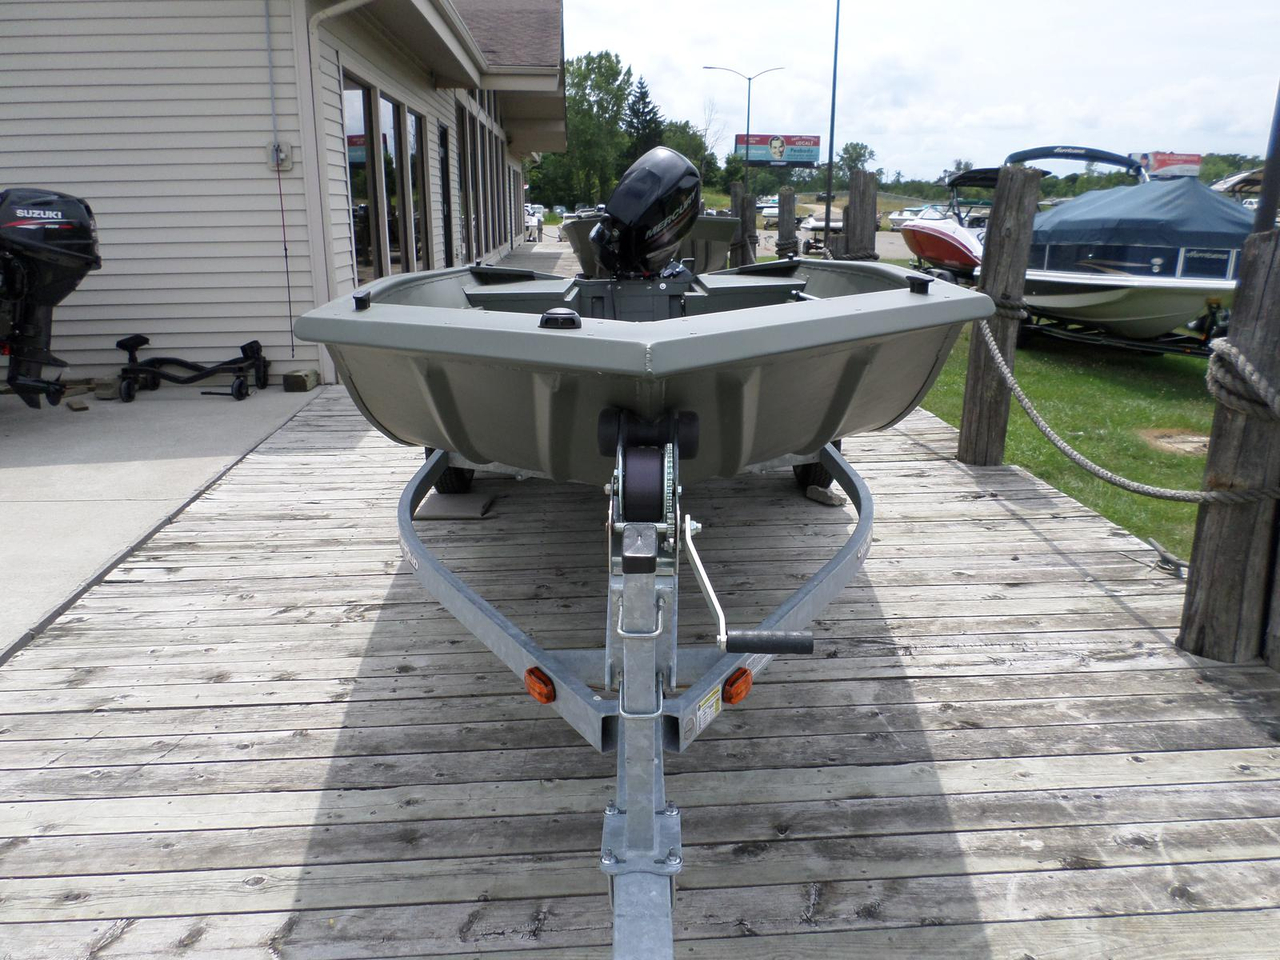 2016 New Polar Kraft Outfitter Modified V 1654 Jon Boat